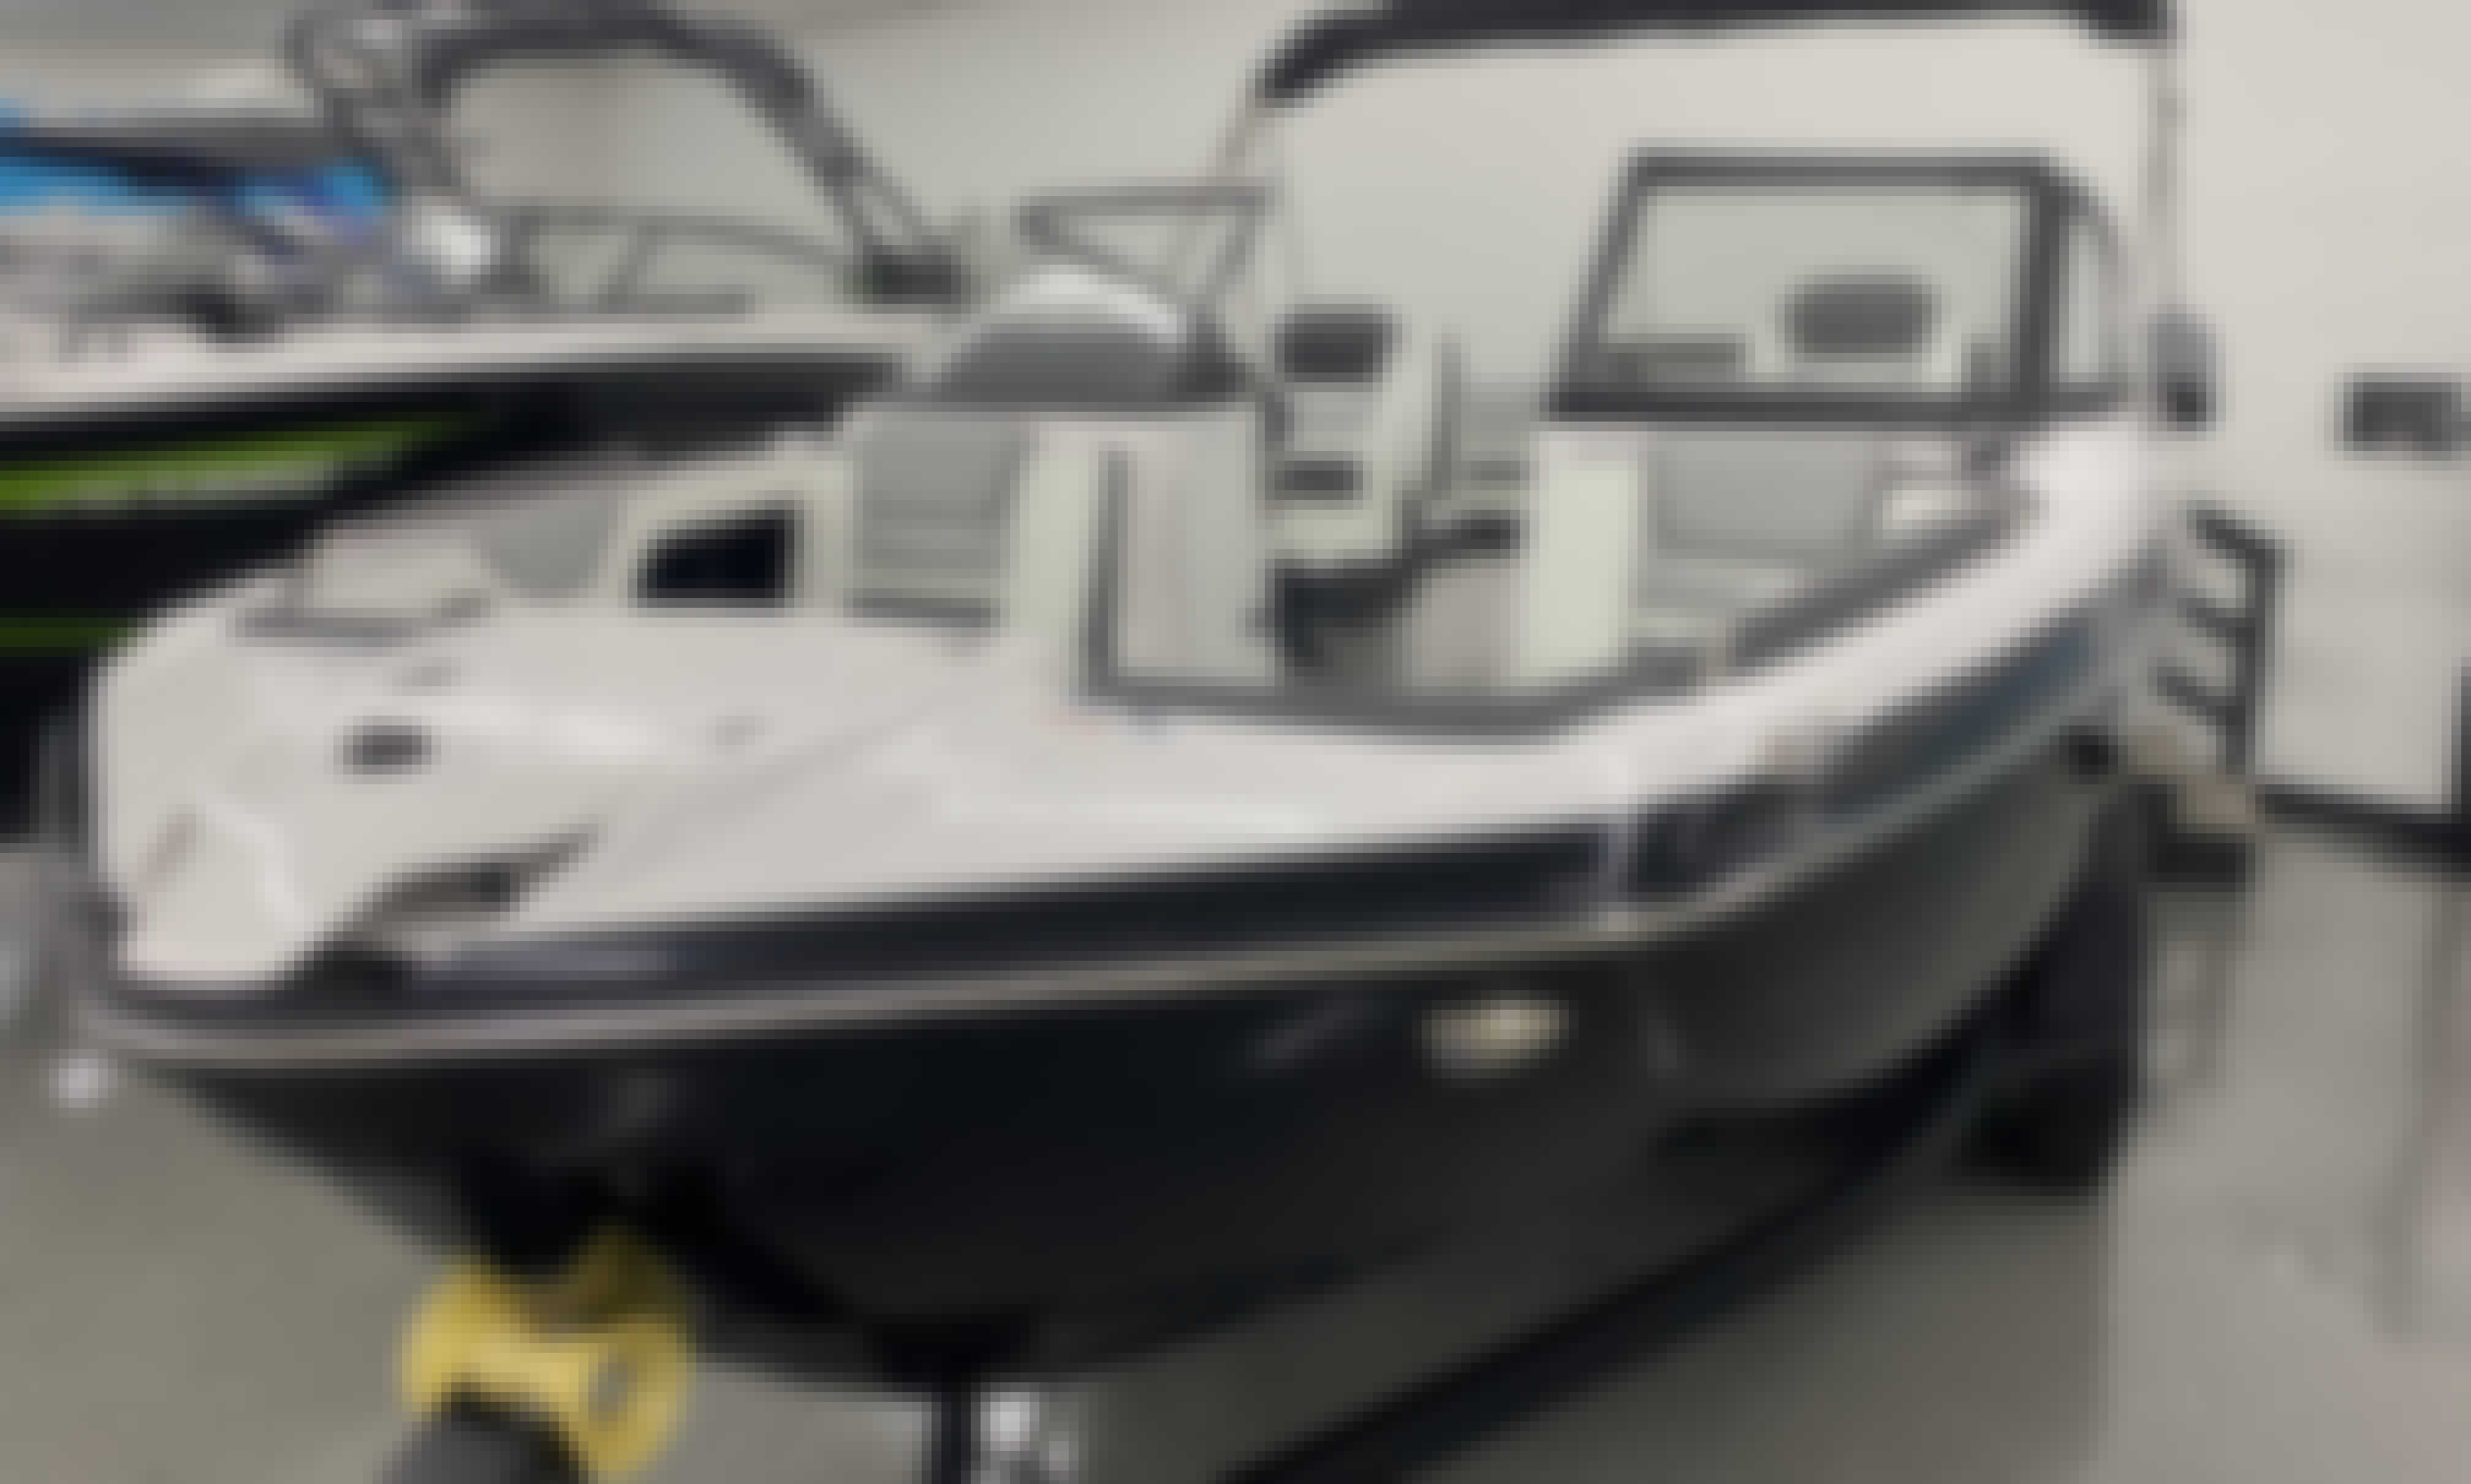 Cruise the lake in style on this 2021 Yamaha Boat!